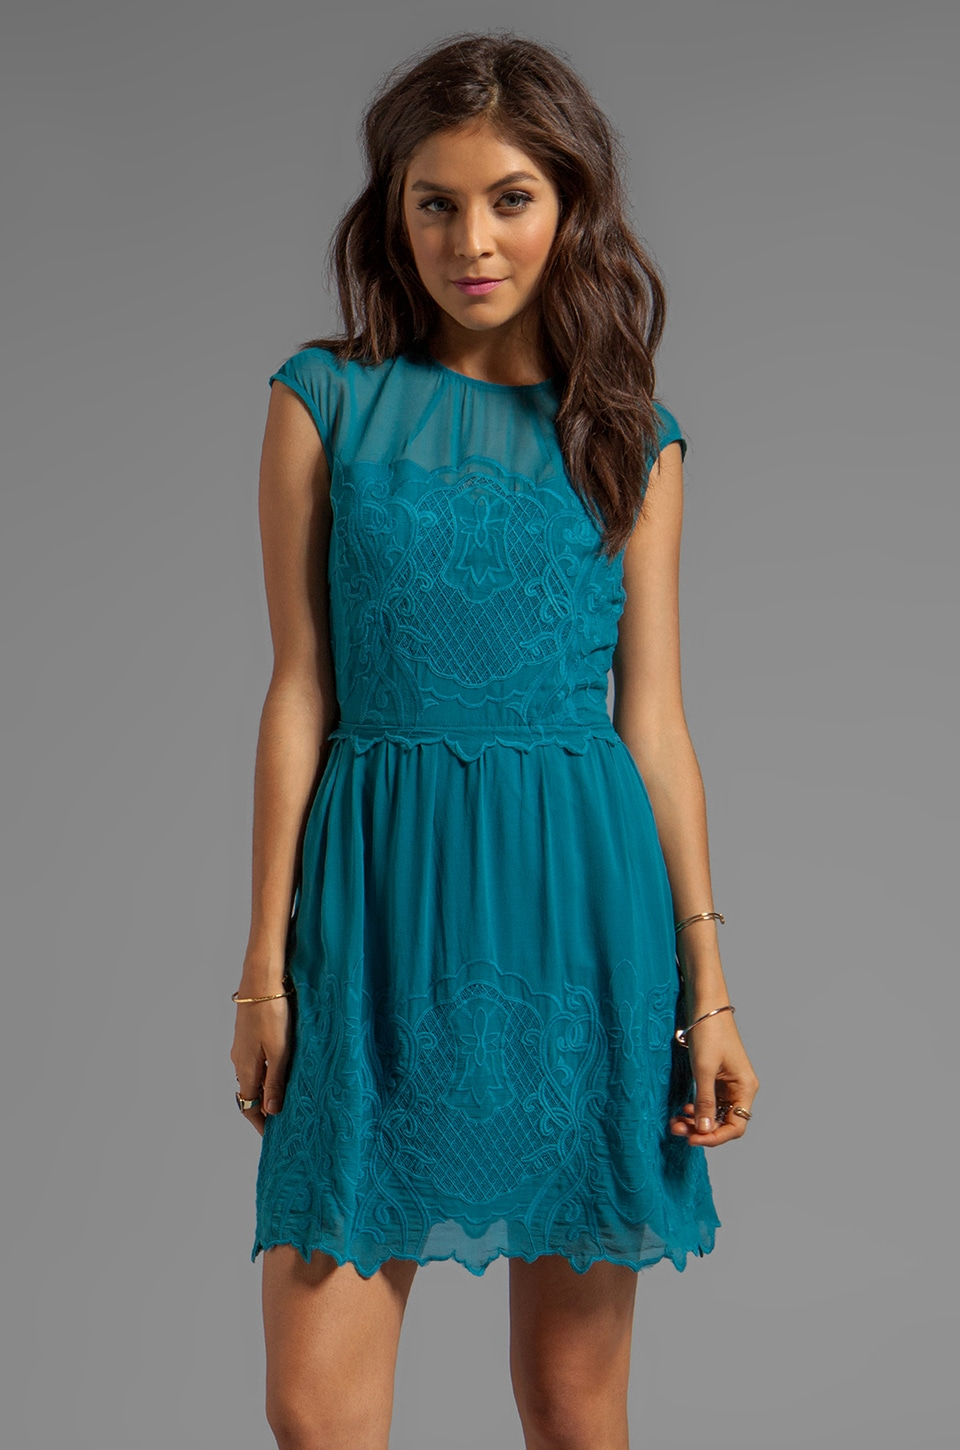 Dolce Vita Kloey New Baroque Dress in Teal